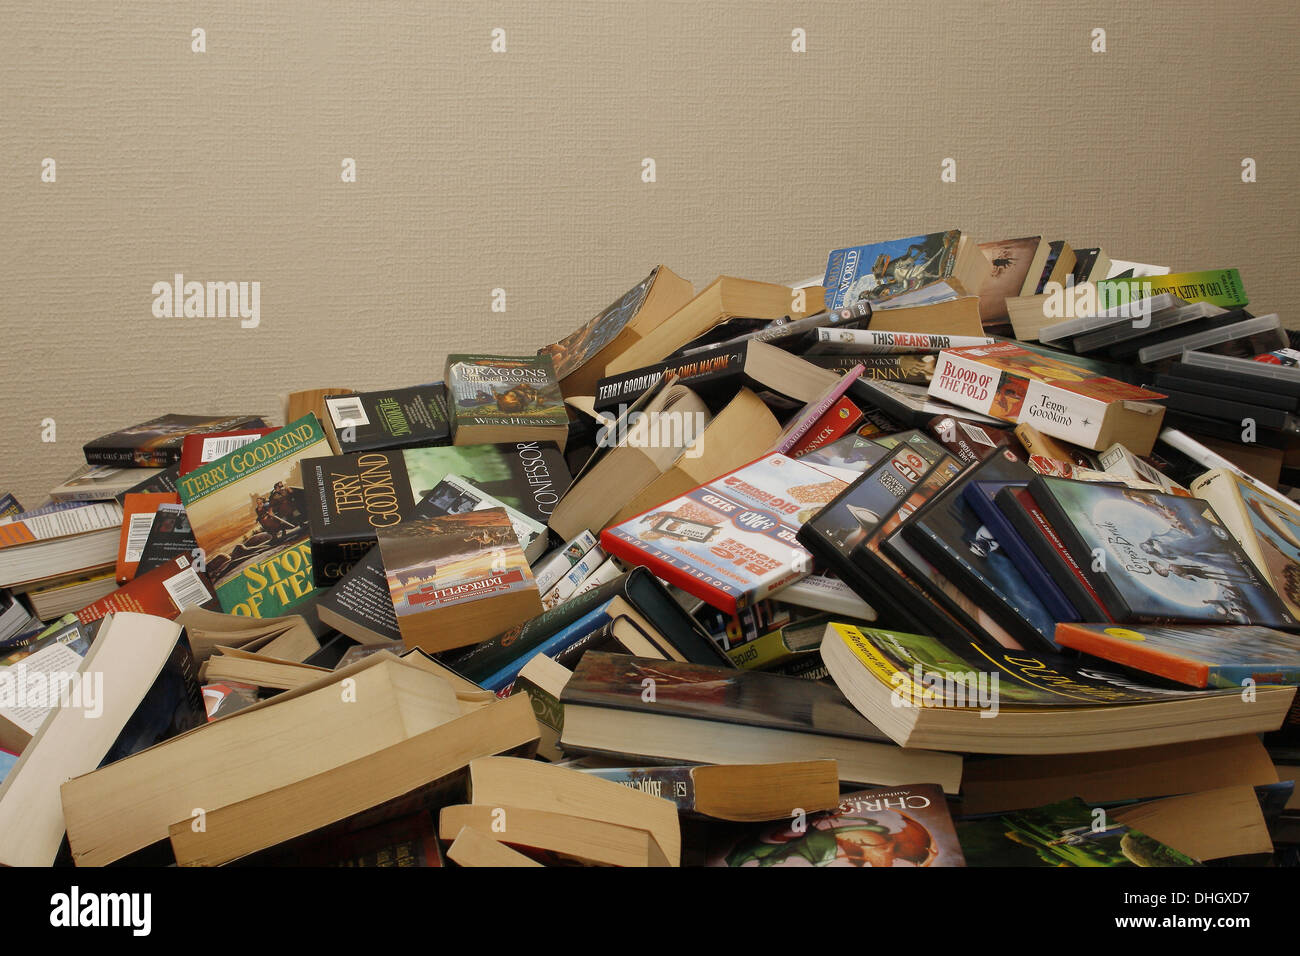 Large pile of books and DVDs on floor of house - Stock Image